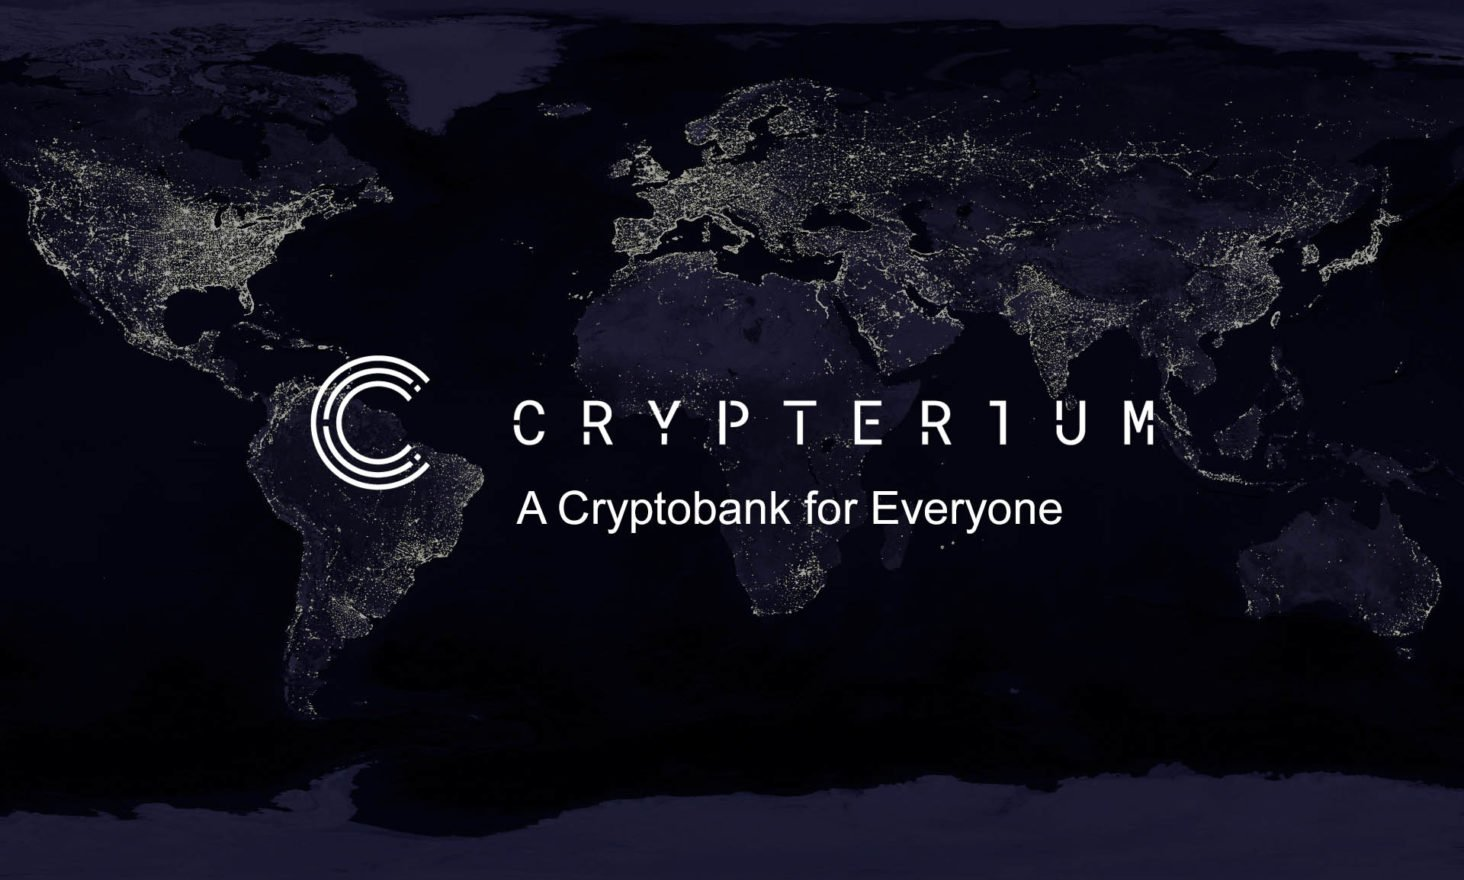 Crypterium Tops the ICO Hit Parade in Fourth Quarter